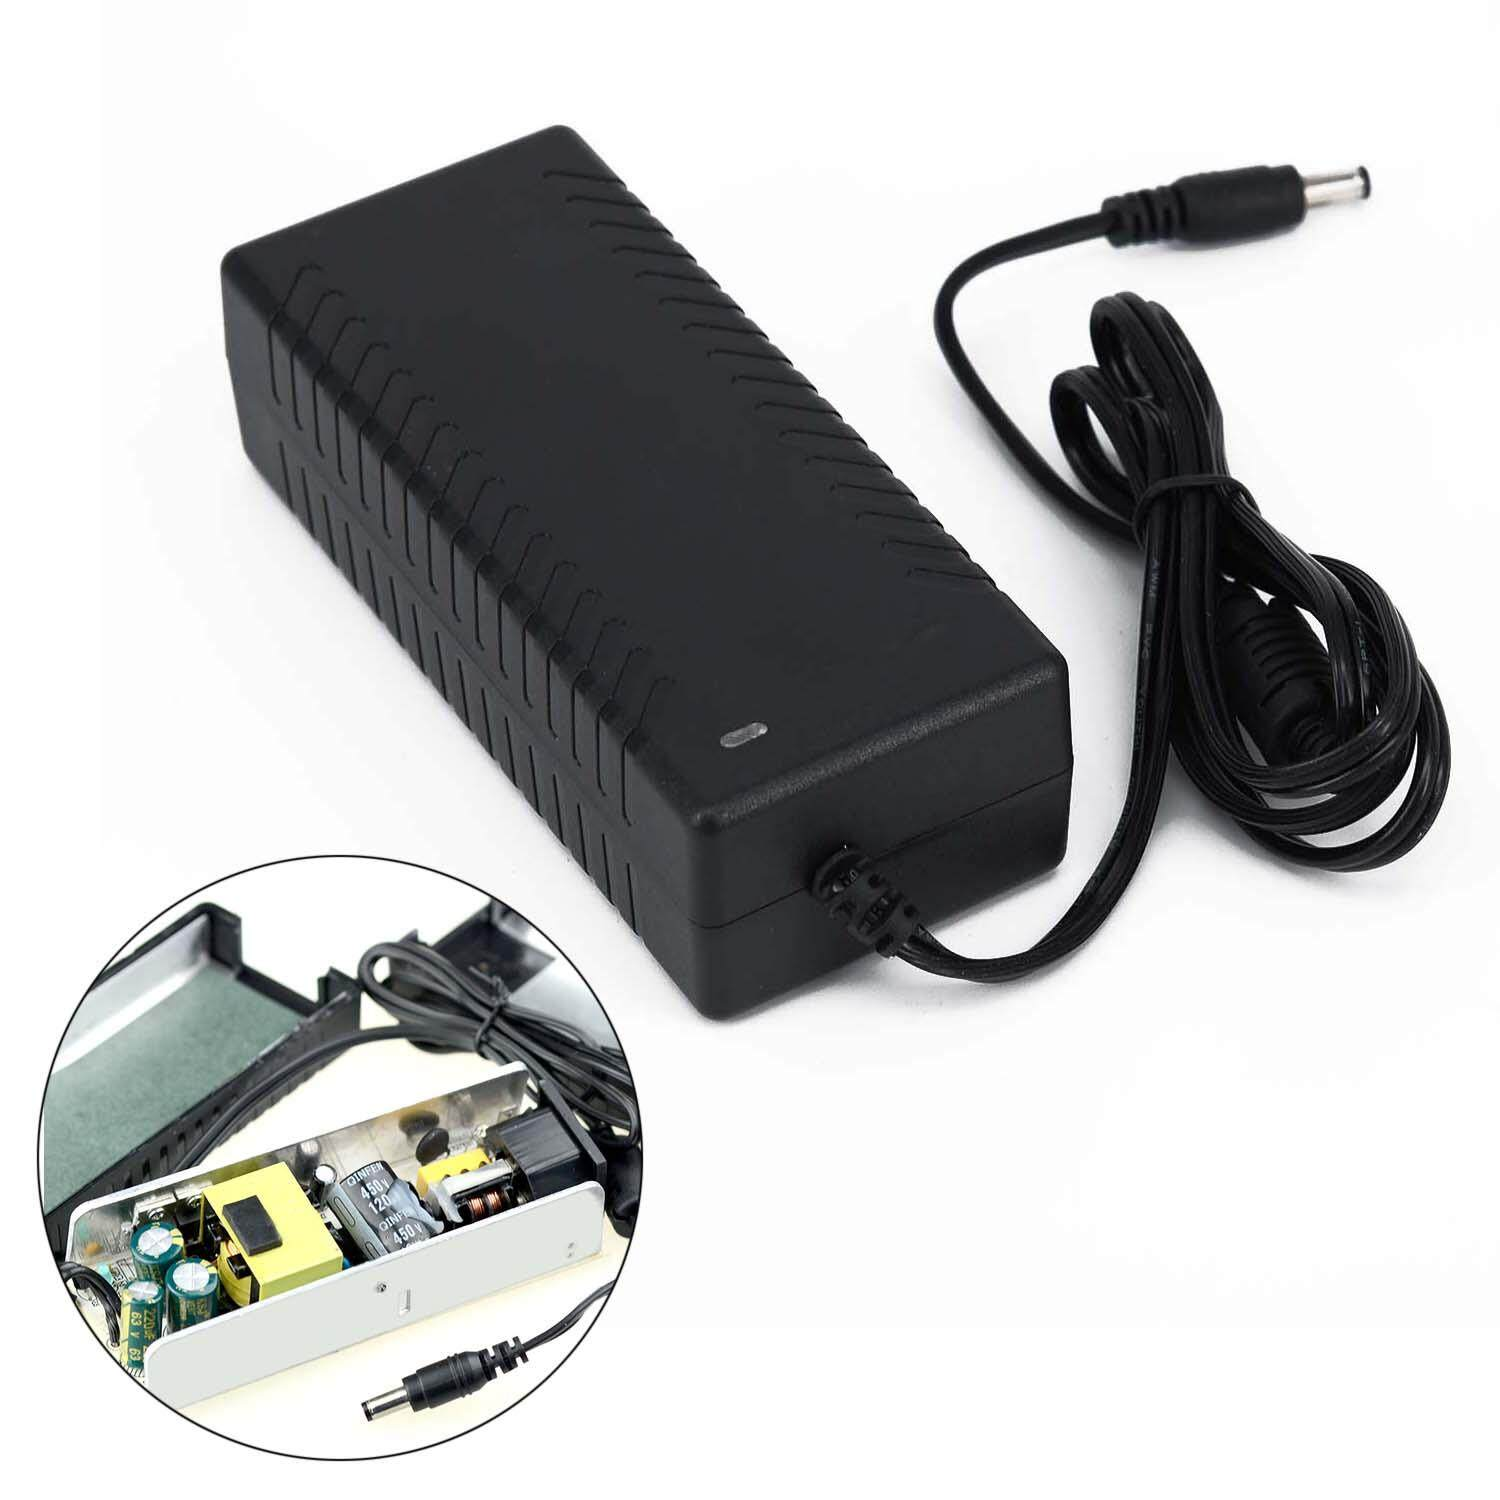 48V 2A 96W POE Switch Injector 100-240V AC to DC Power Supply Adapter Charger